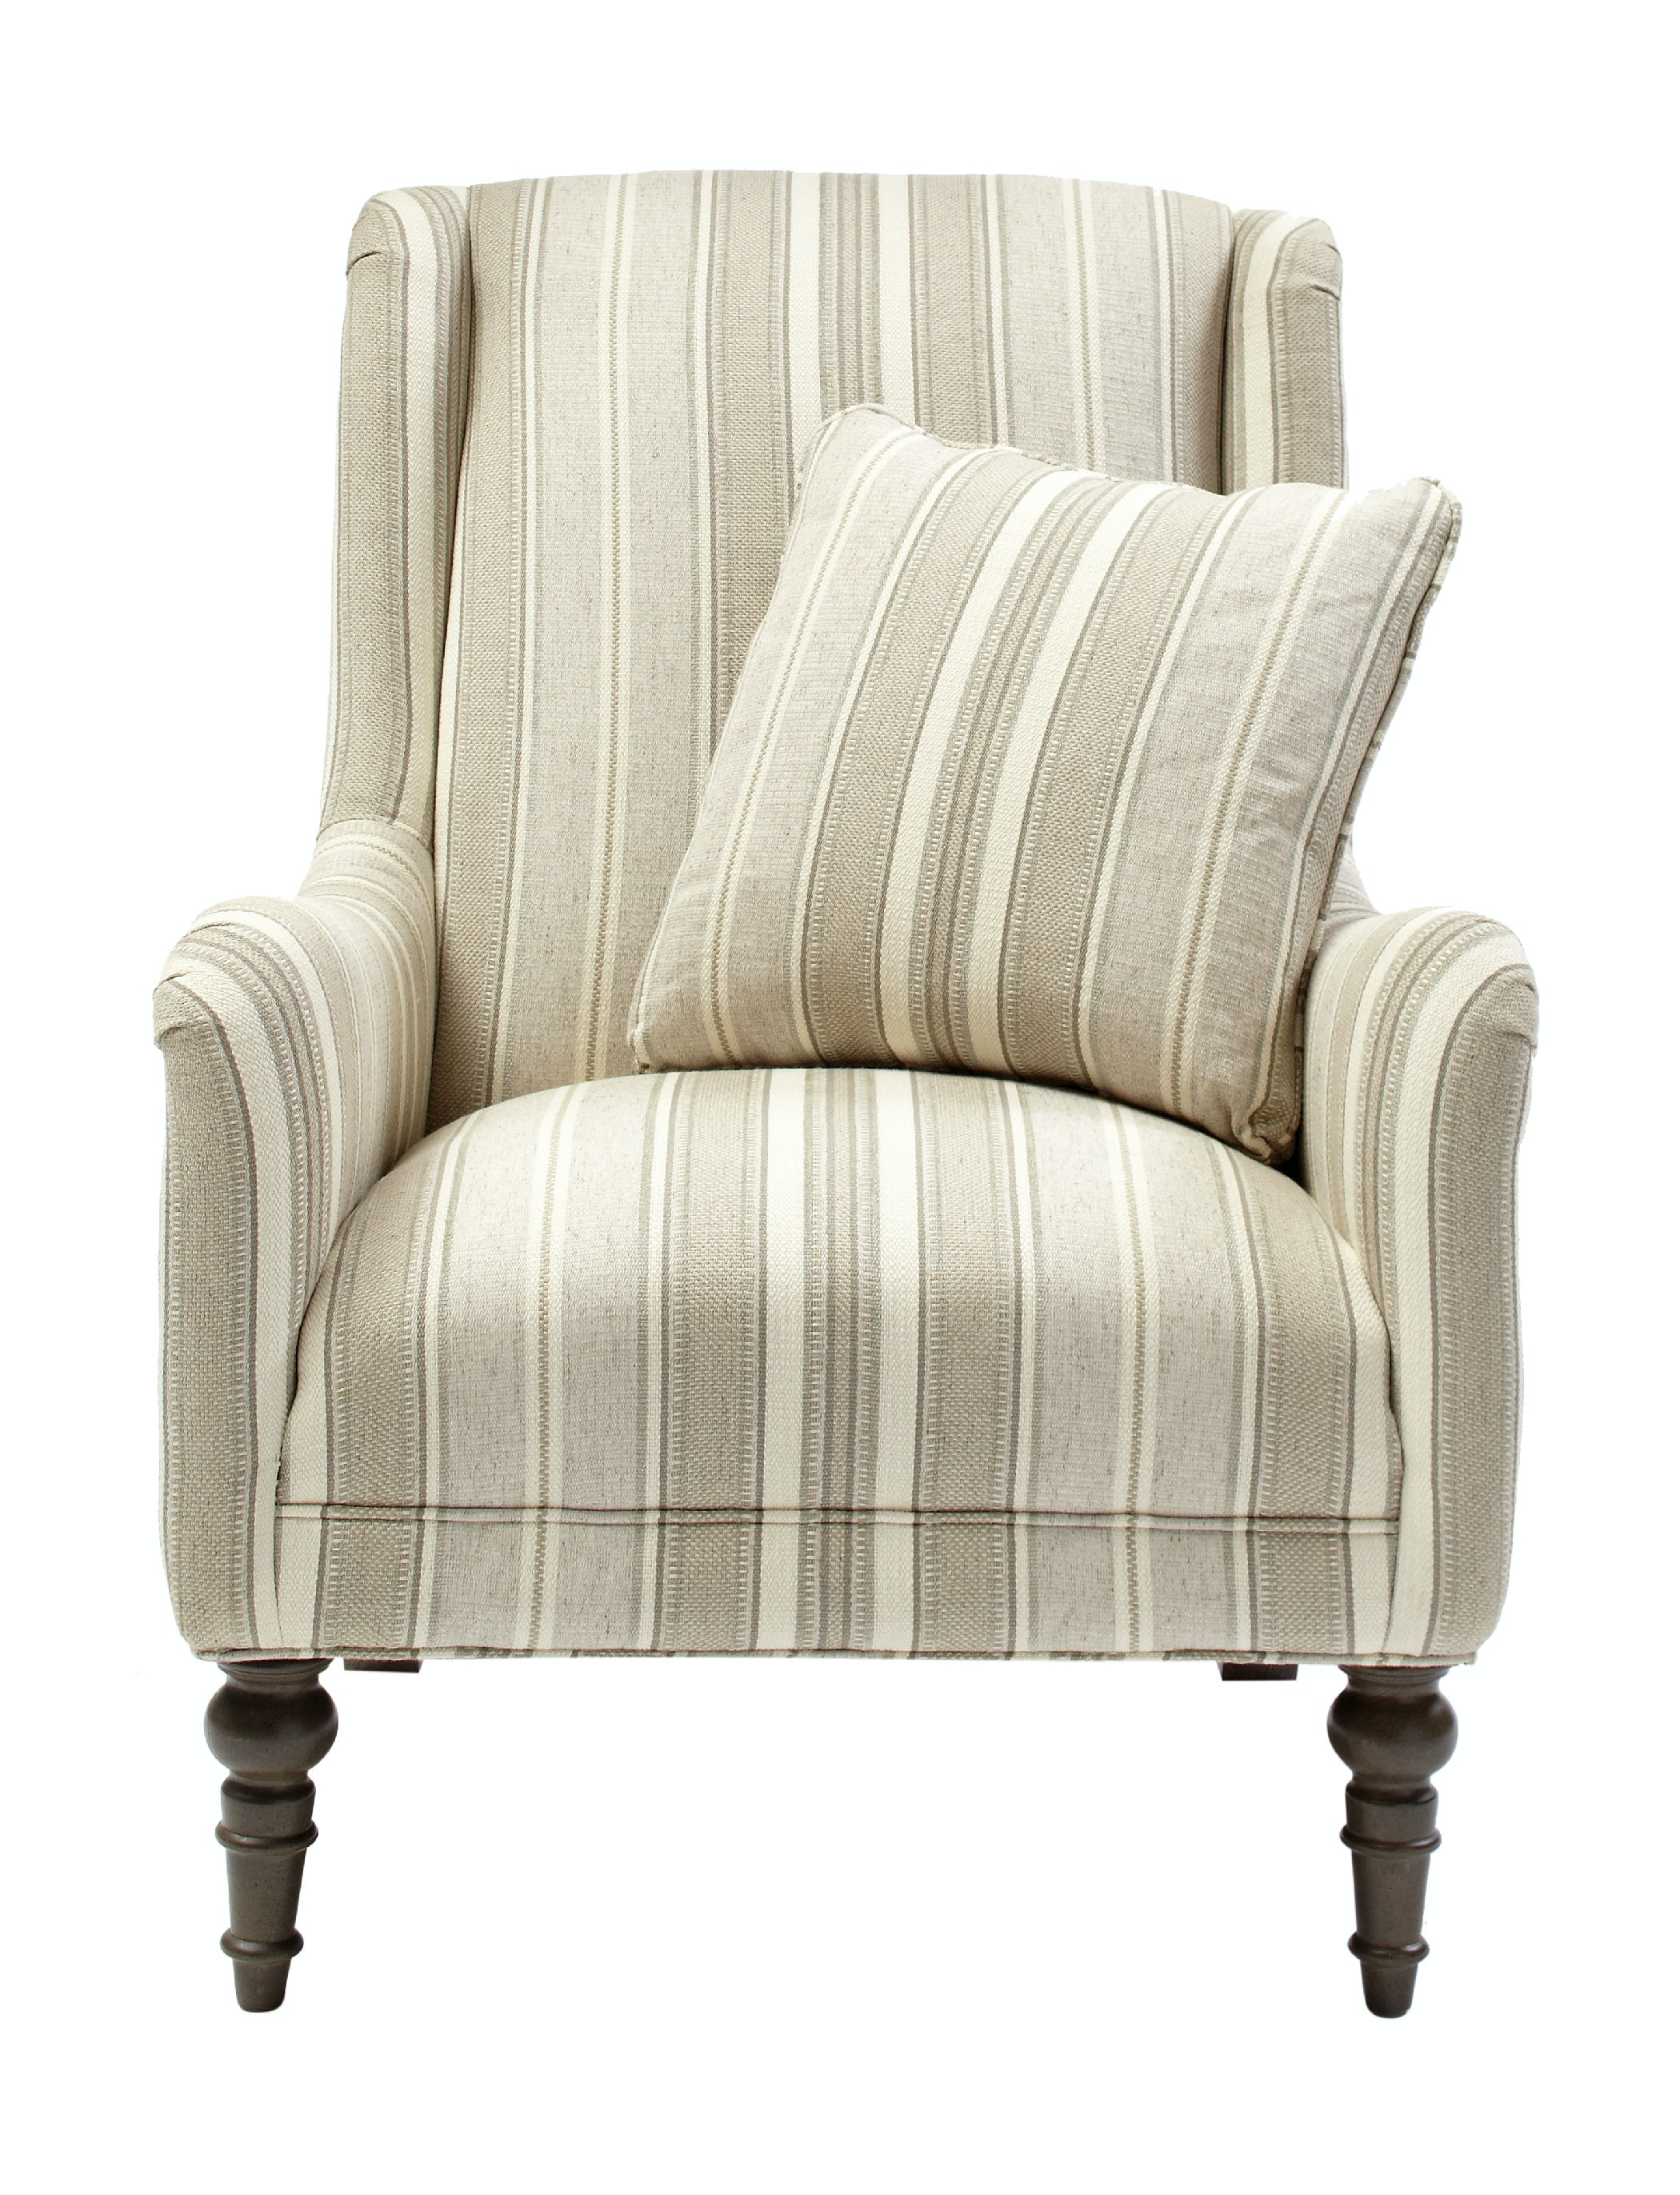 Paula Deen Dogwood Wing Chair  sc 1 st  Star Furniture : paula deen sectional - Sectionals, Sofas & Couches